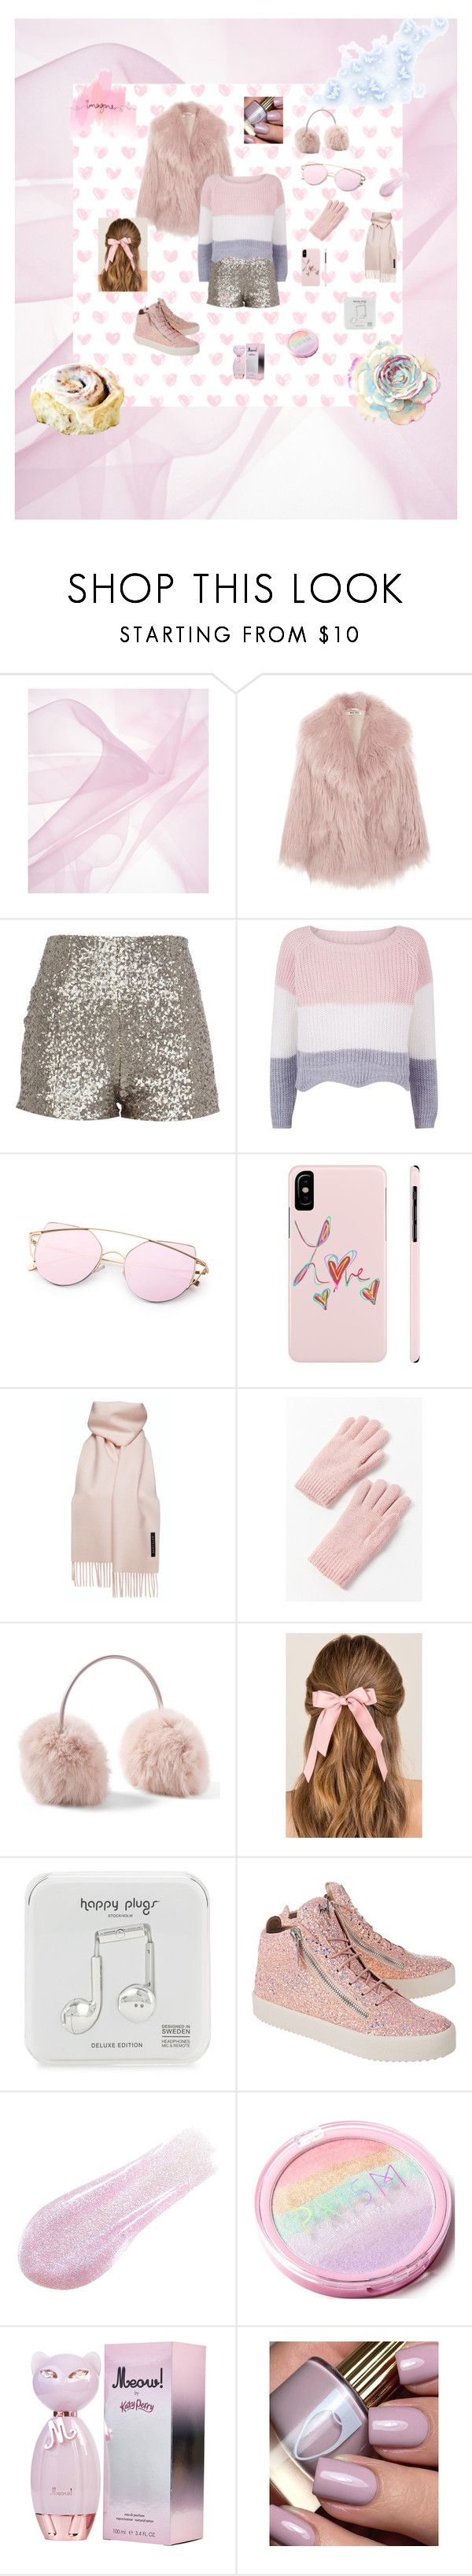 """pink winter perfection"" by caroline-rose-kernan ❤ liked on Polyvore featuring Miu Miu, Urban Outfitters, Francesca's, Happy Plugs, Giuseppe Zanotti, Lipstick Queen, TEM, fur, winterfashion and winterstyle"